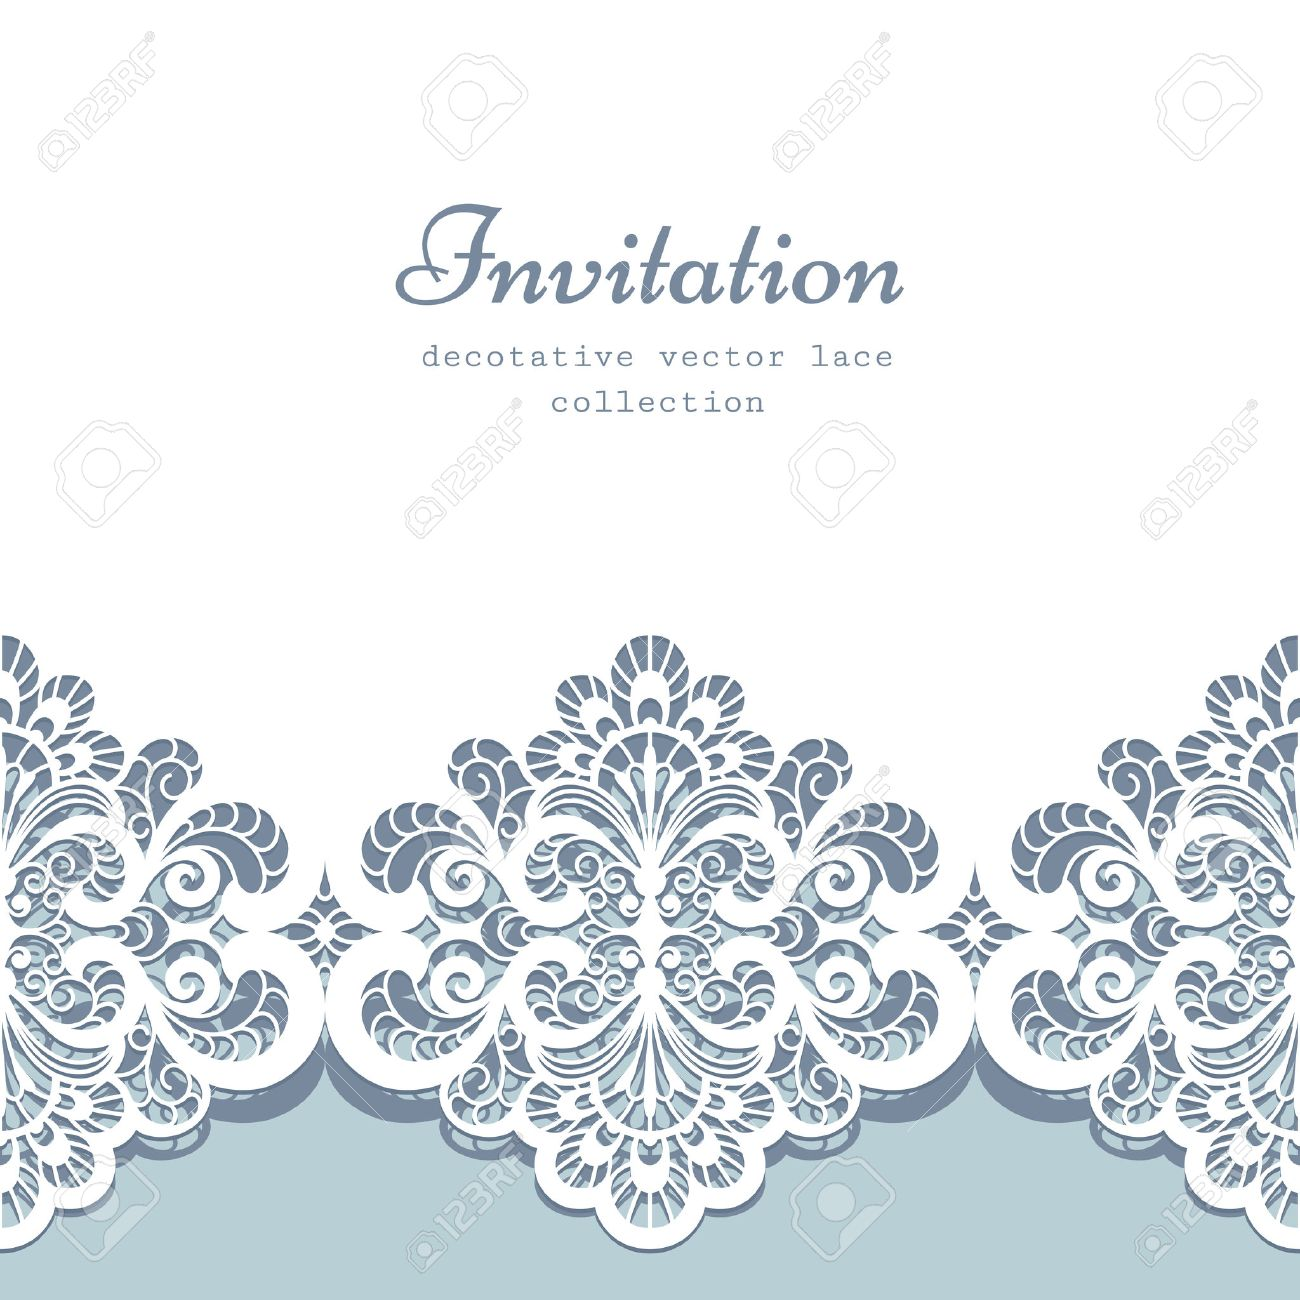 Elegant Greeting Card Or Wedding Invitation Template With Lace ...